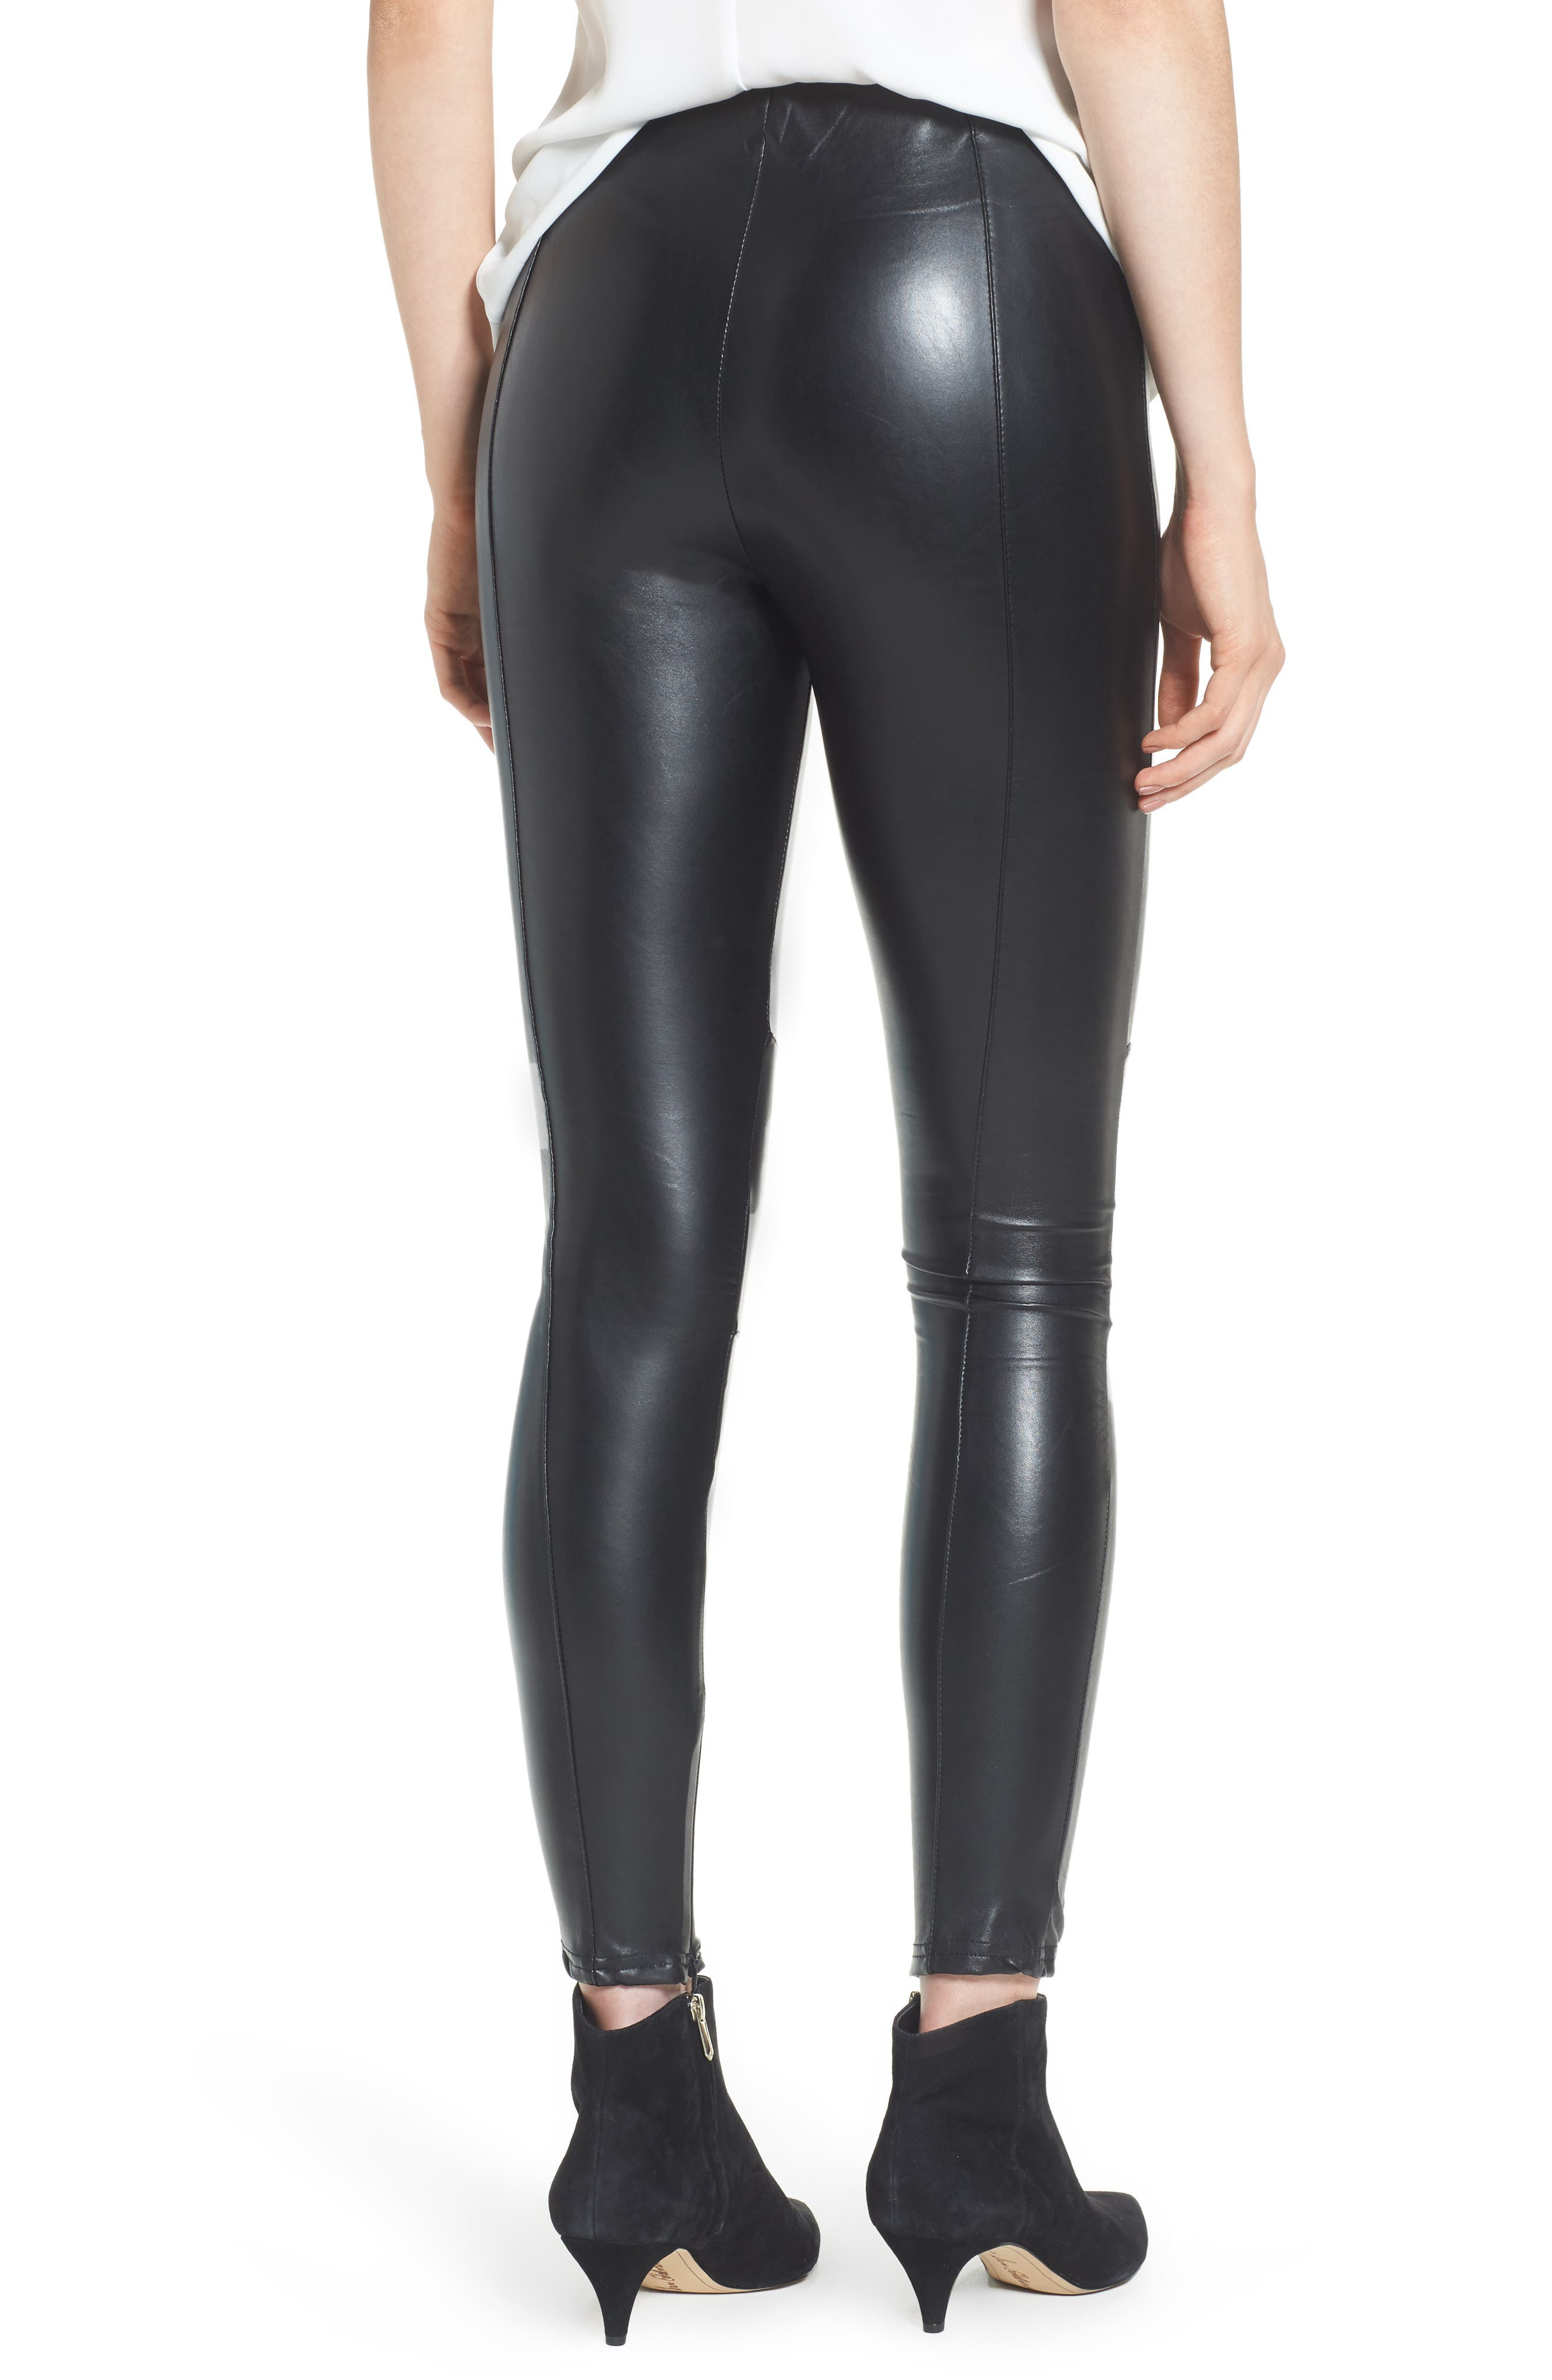 Bishop + Young Faux Leather Ankle Leggings,                             Alternate thumbnail 2, color,                             Black